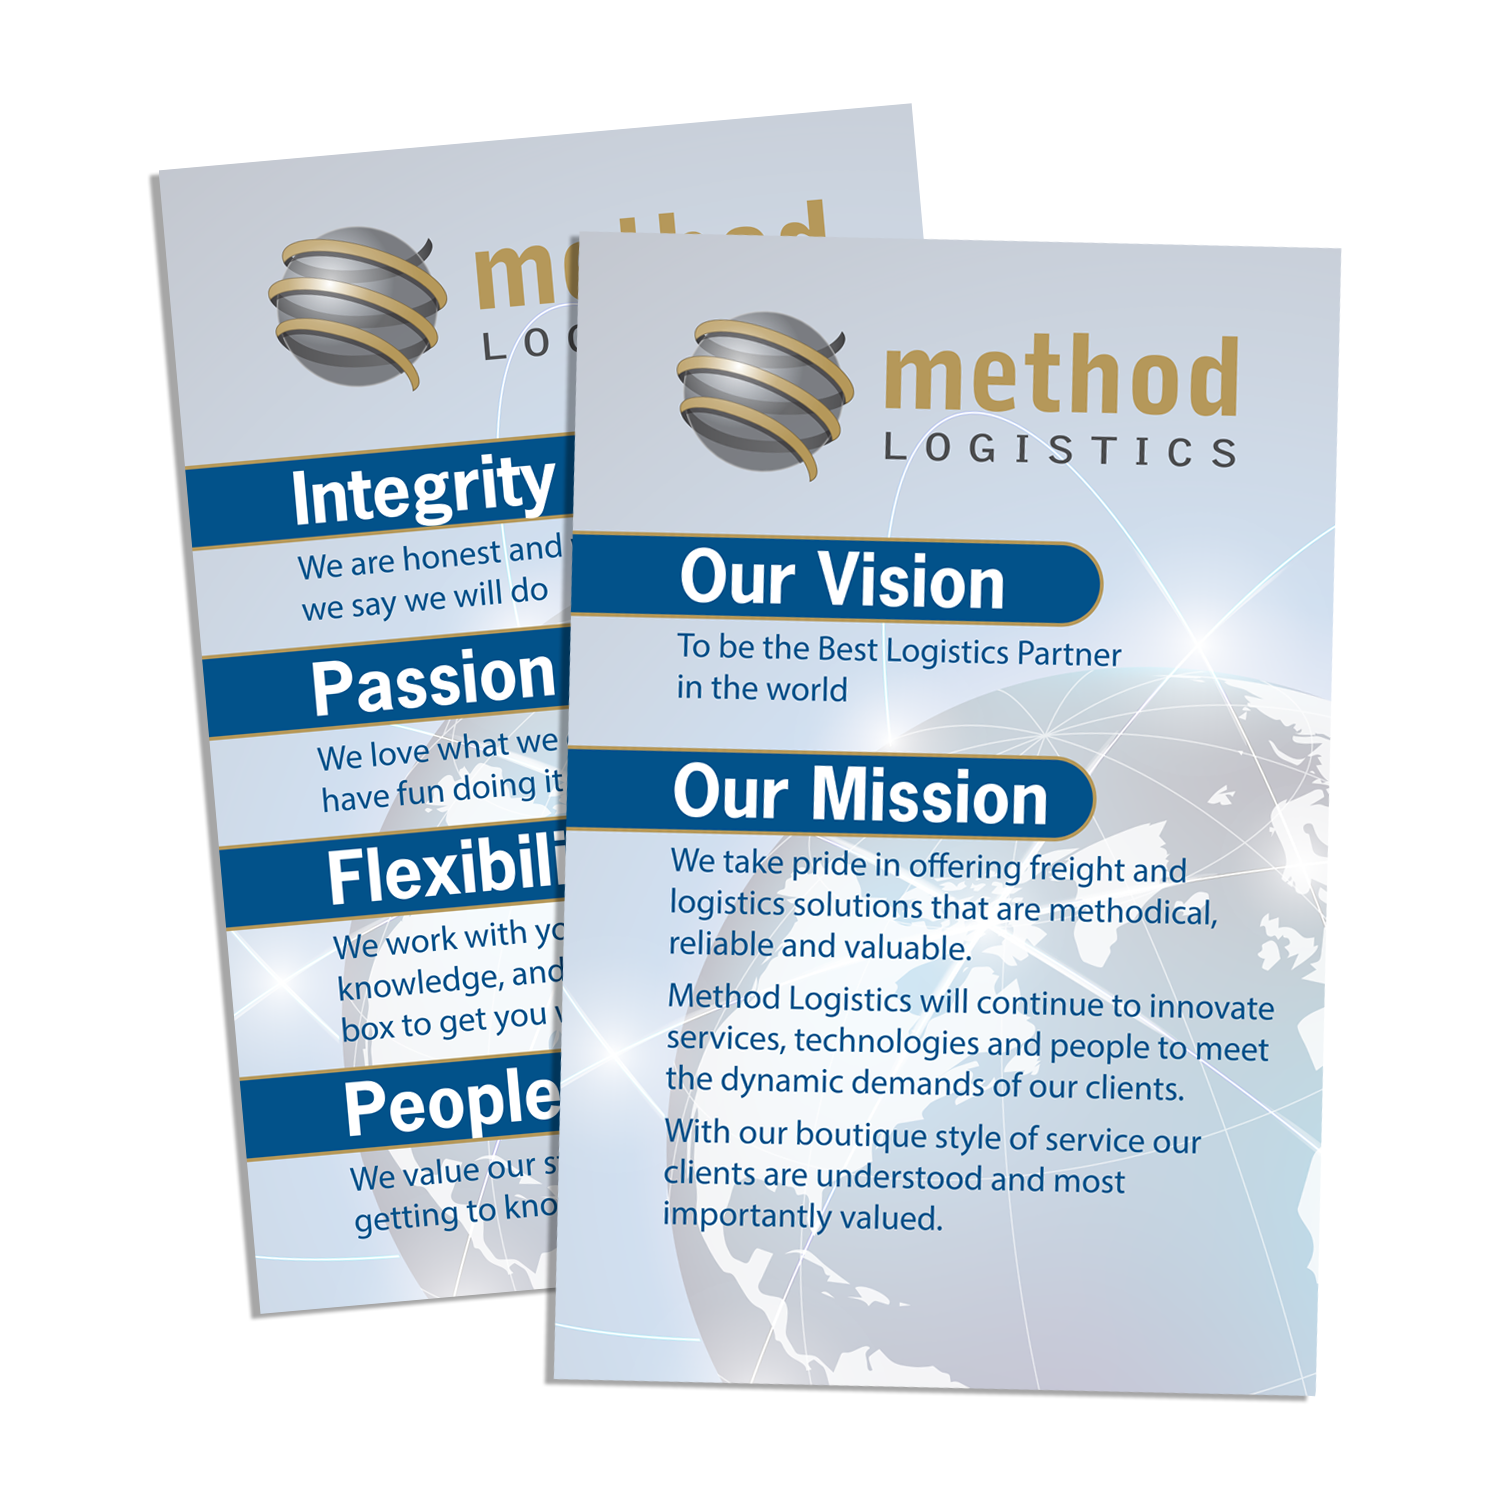 COMPANY MISSION POSTERS FOR METHOD LOGISTICS